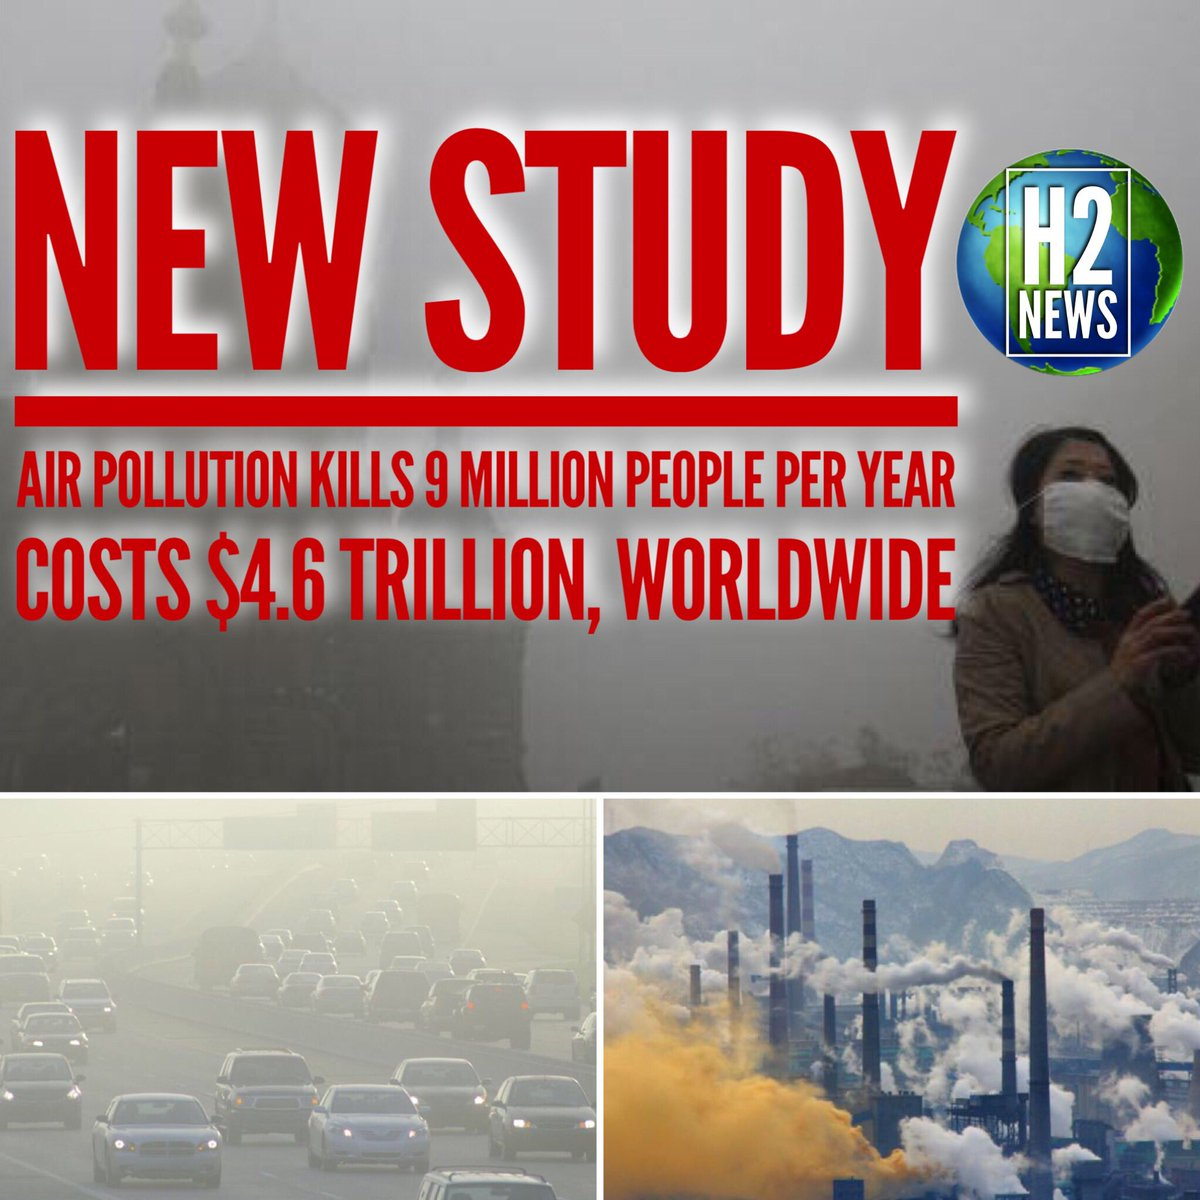 New study shows #air #pollution is the most costly and deadly problem on #Earth. 1/6 premature deaths are due to toxic exposure. #hydrogen<br>http://pic.twitter.com/6cXEGTZOse